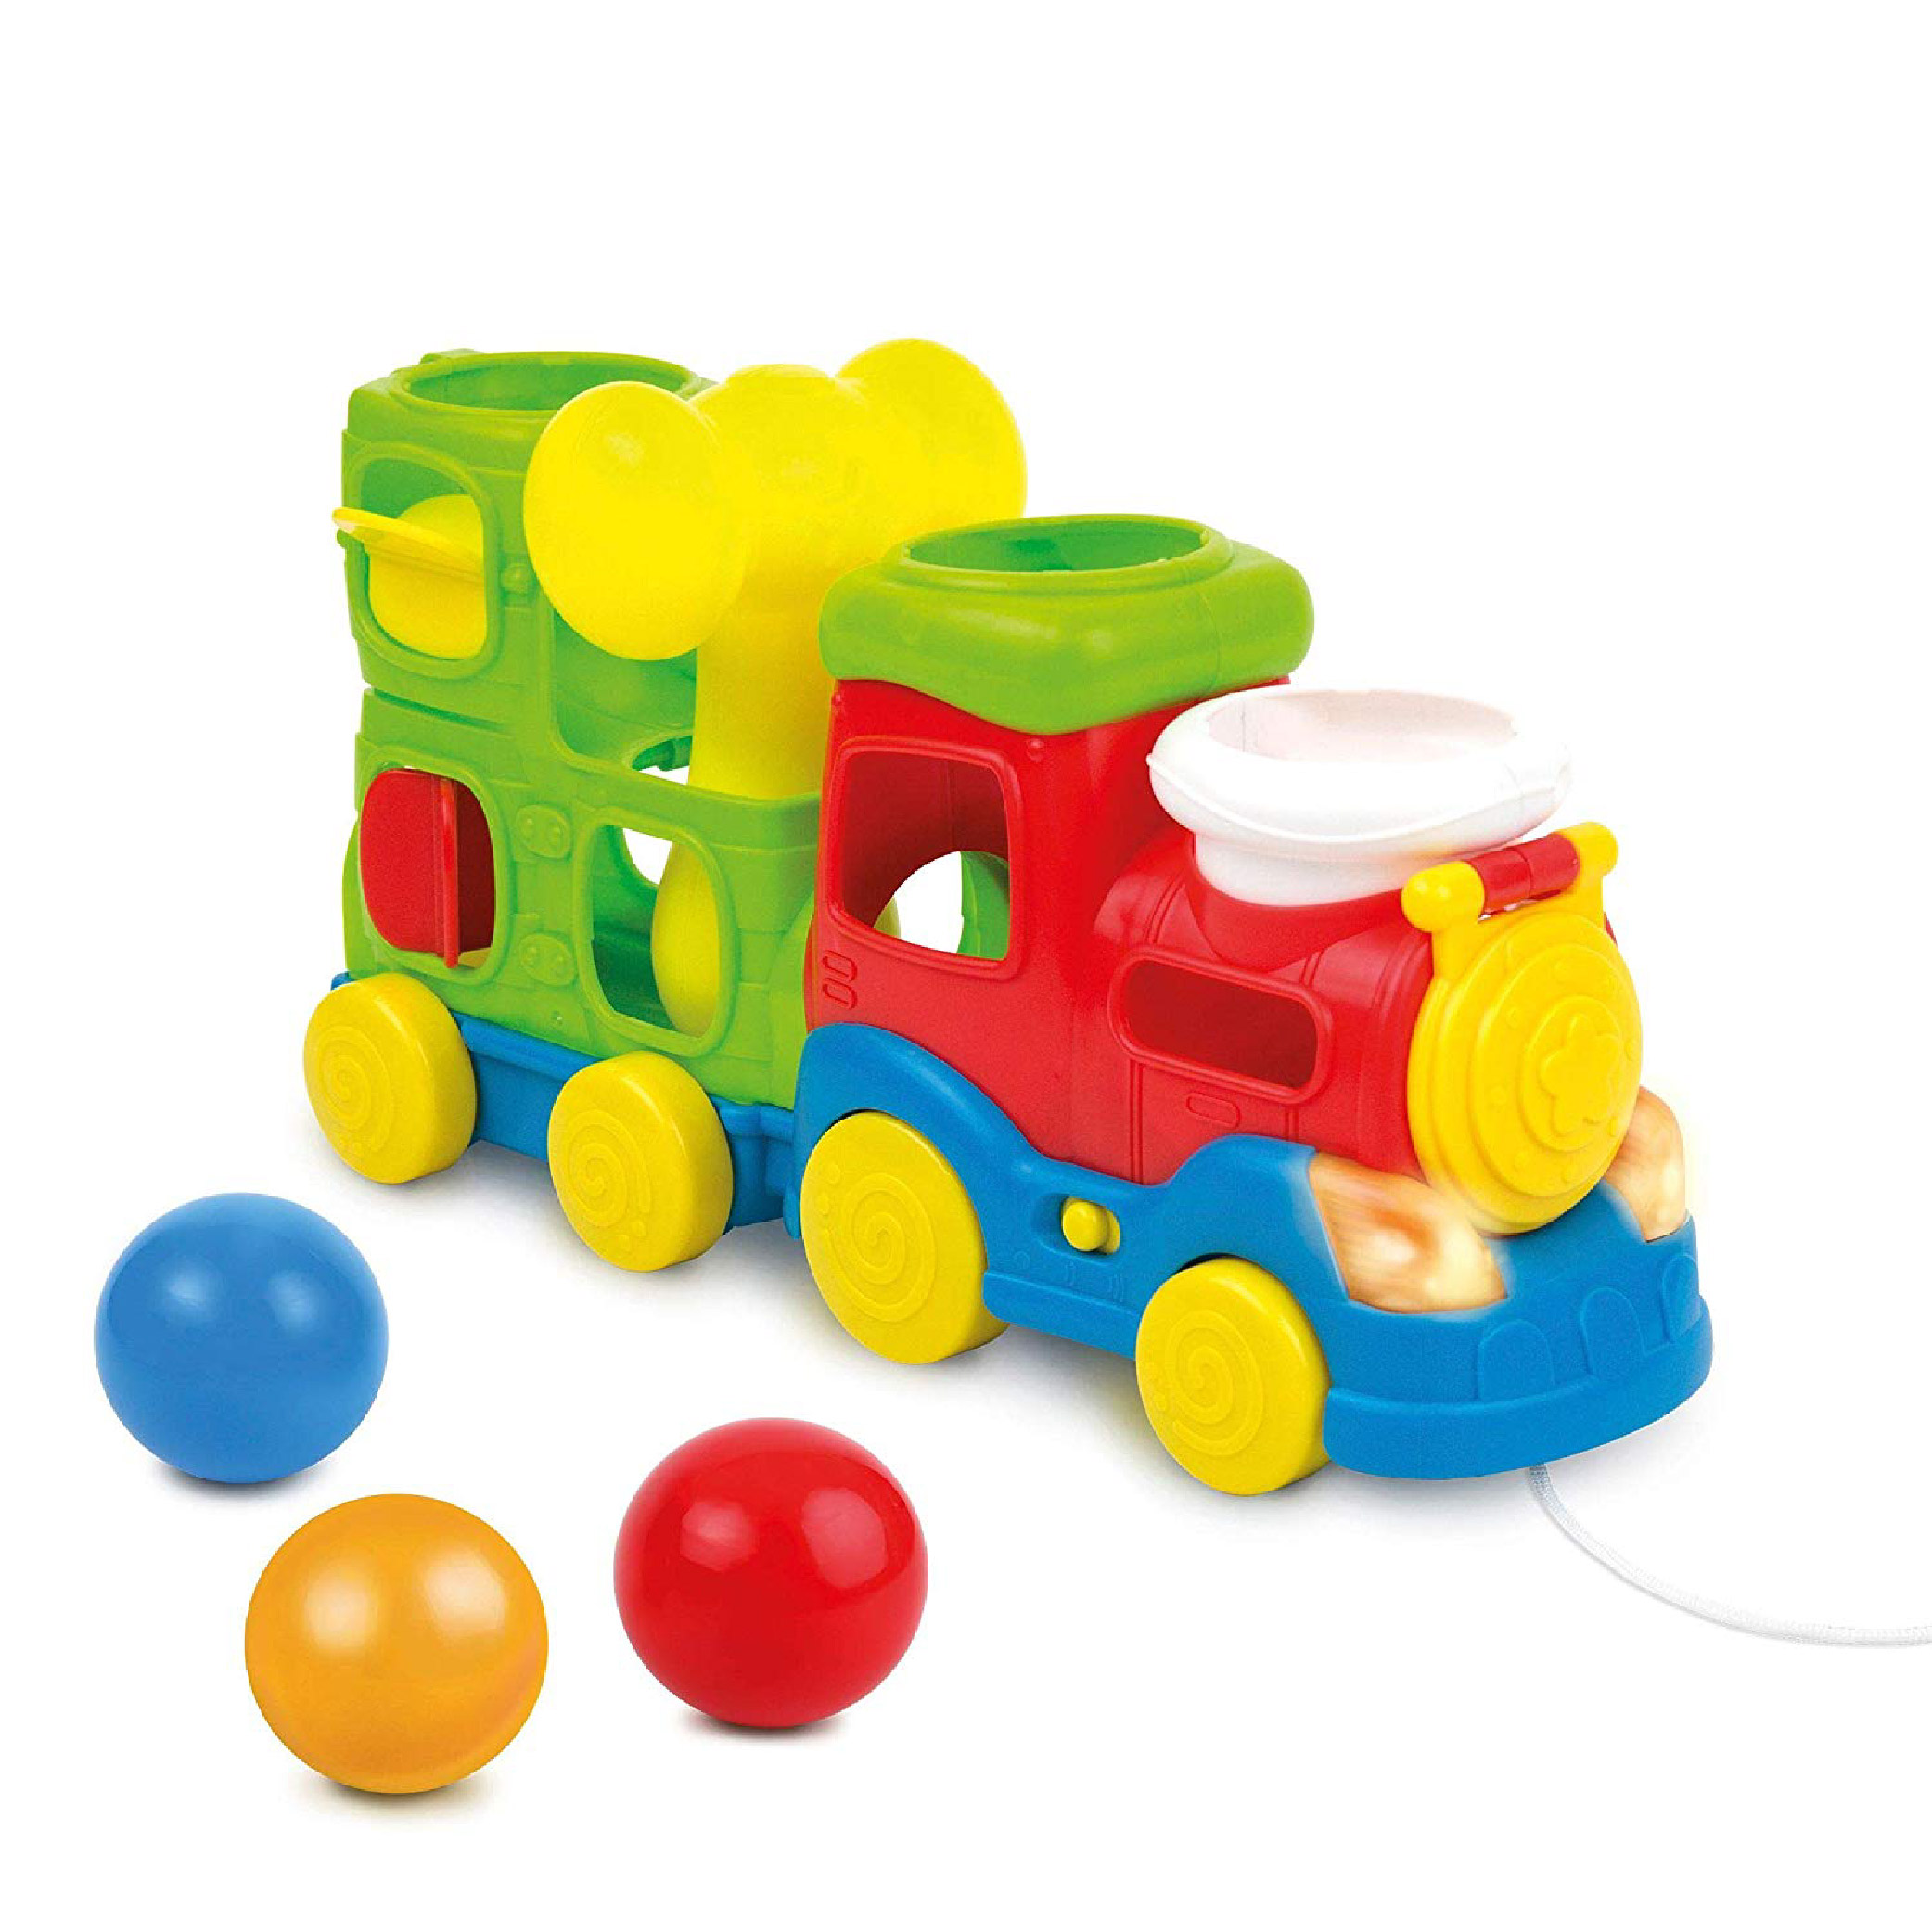 Lot 209_Winfun Pound N Play Train-2